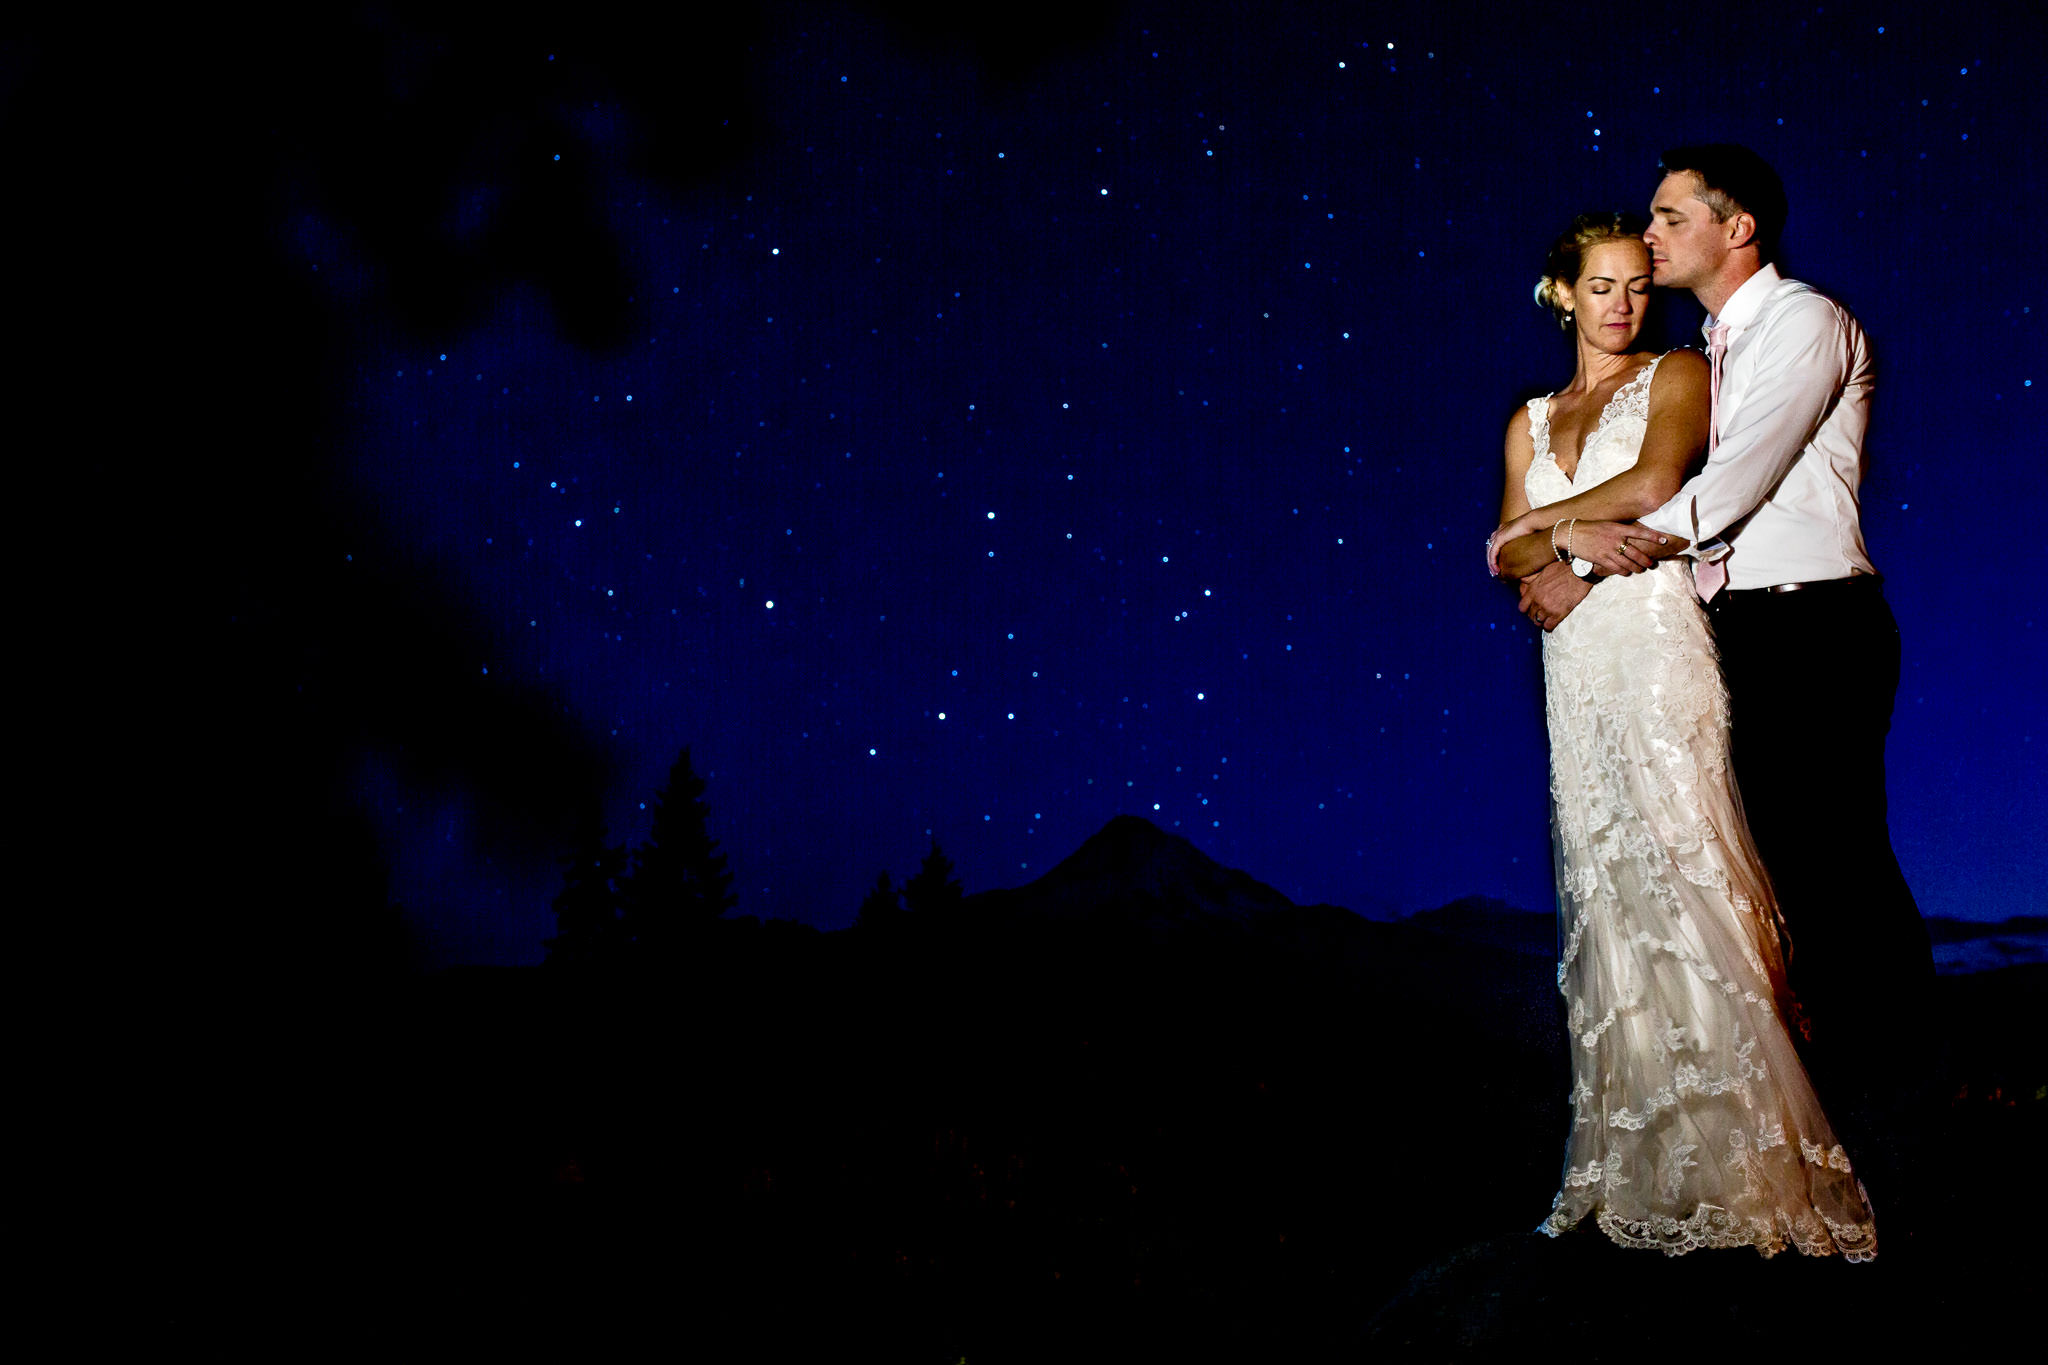 Bride and Groom night shot with stars and Mt Hood at Mt Hood Organic Farms wedding